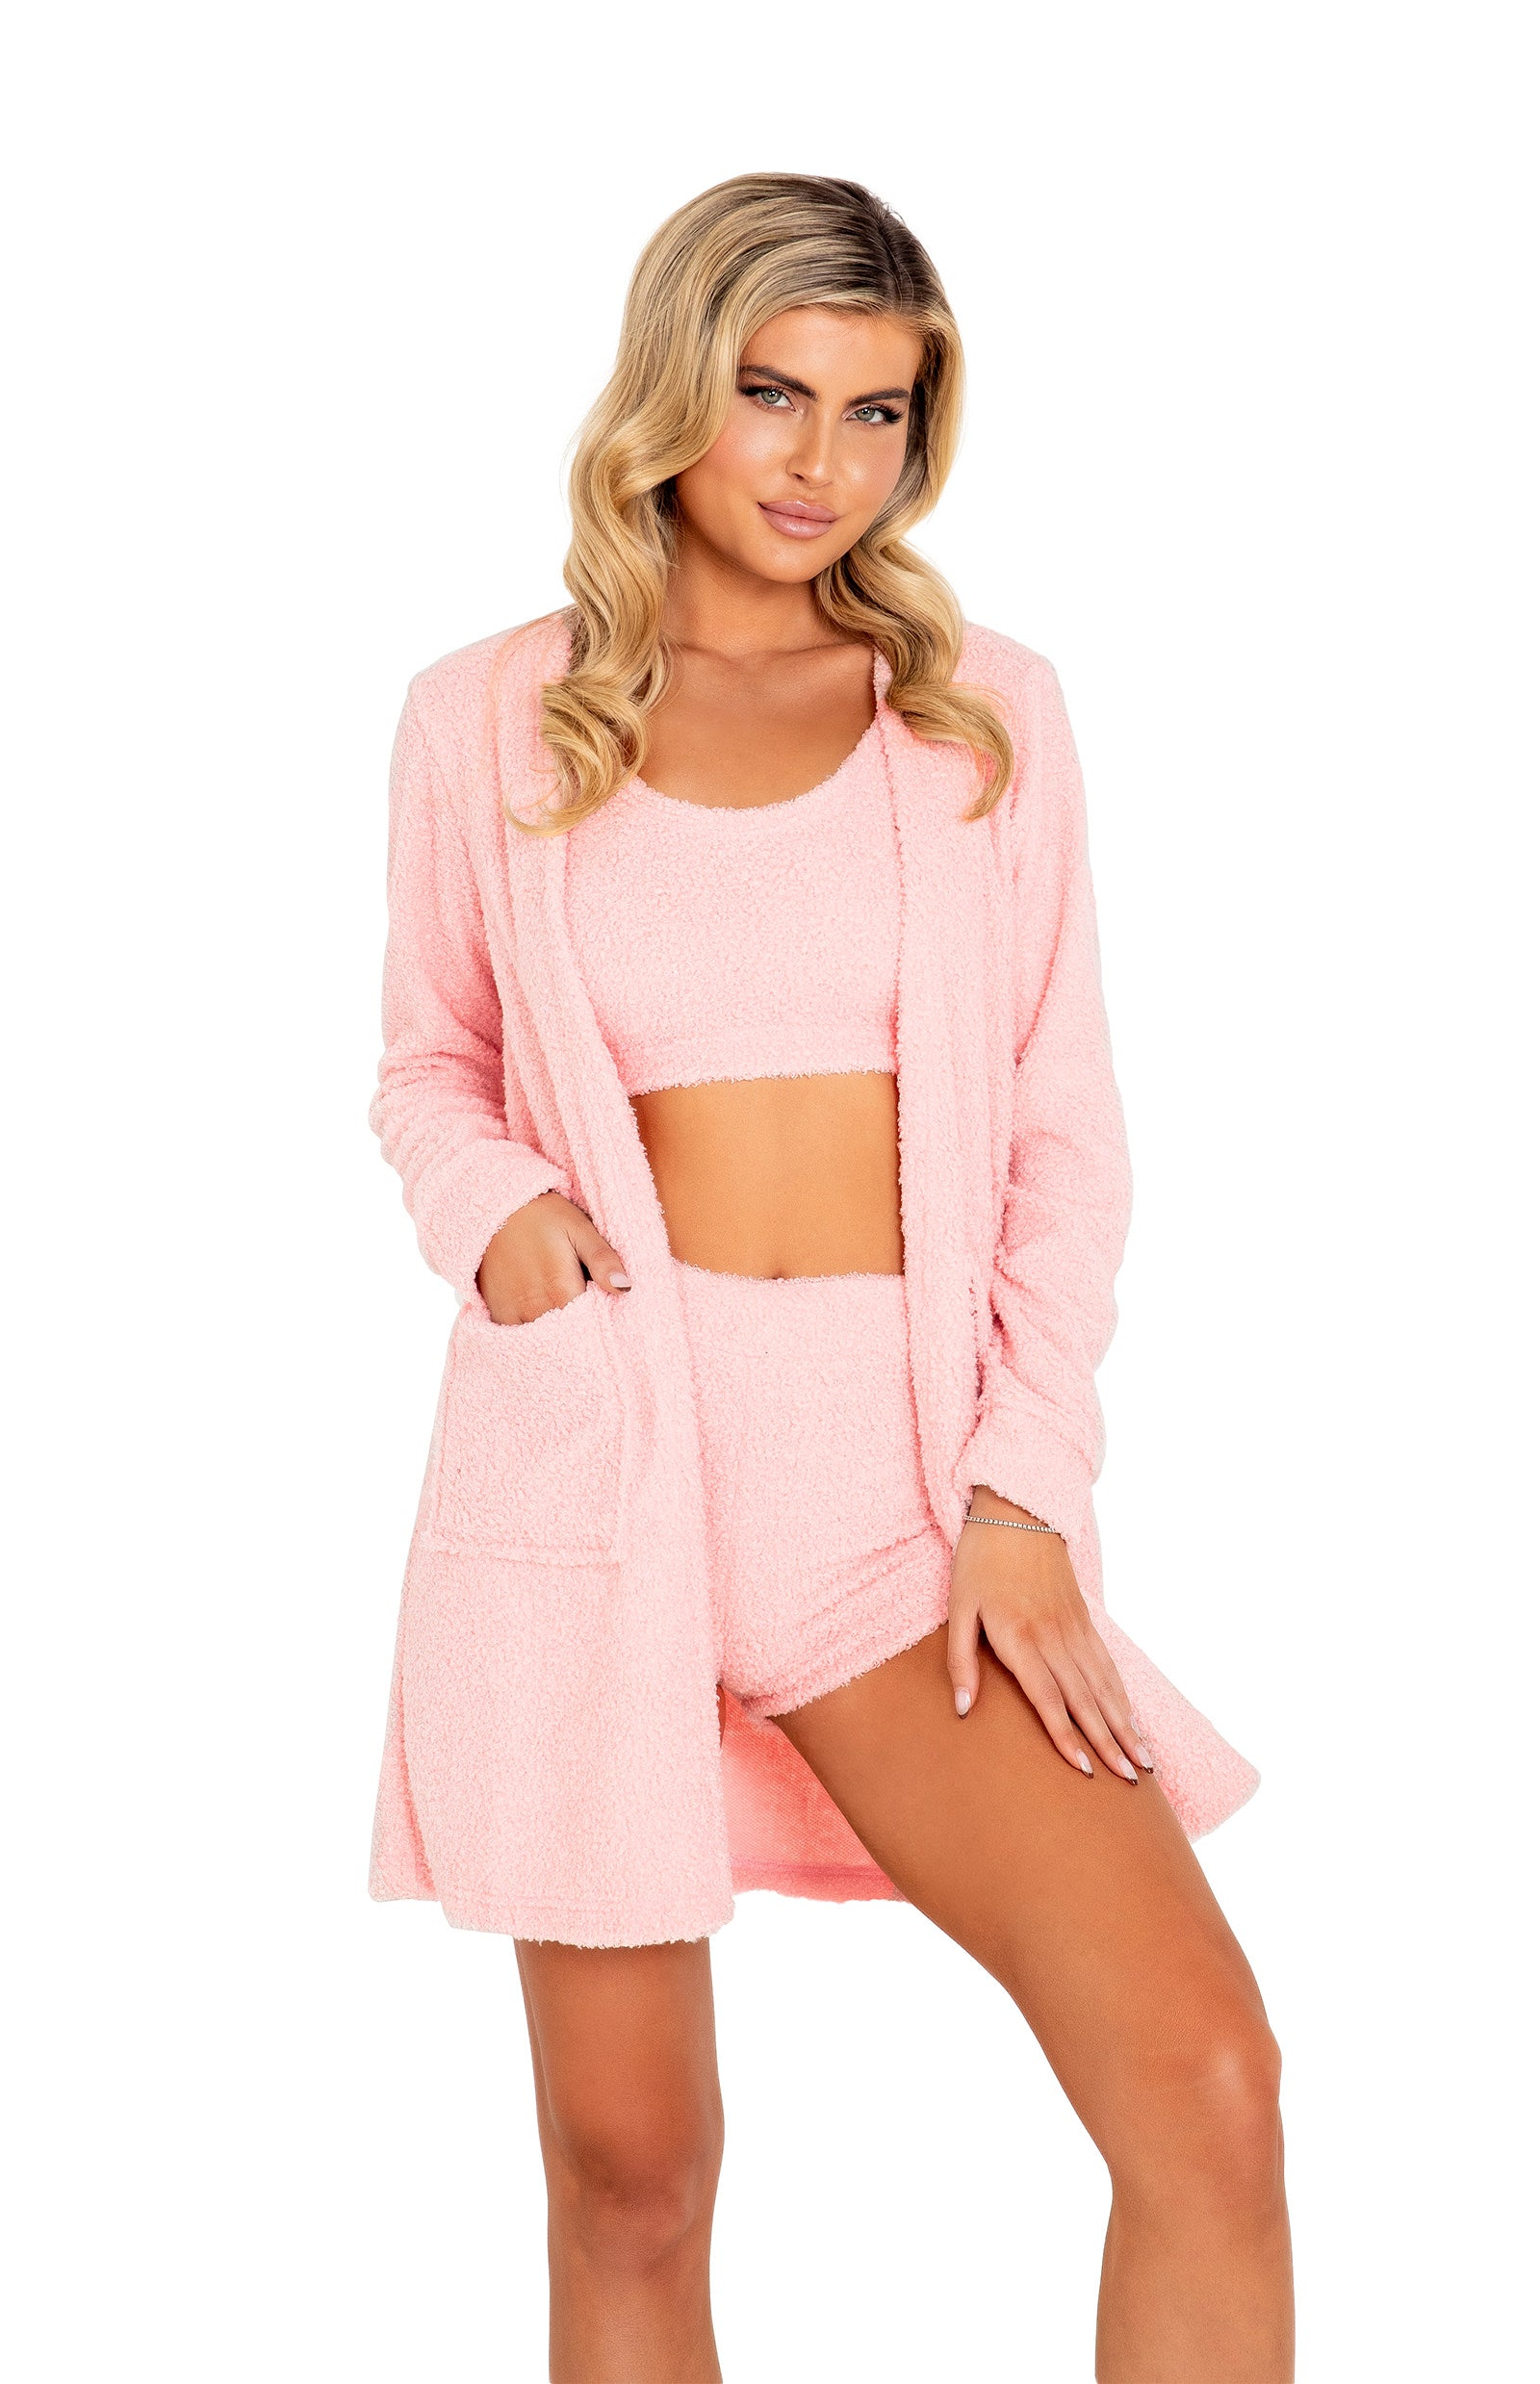 LI411 - 1pc Cozy & Comfy Fuzzy Robe with Pockets